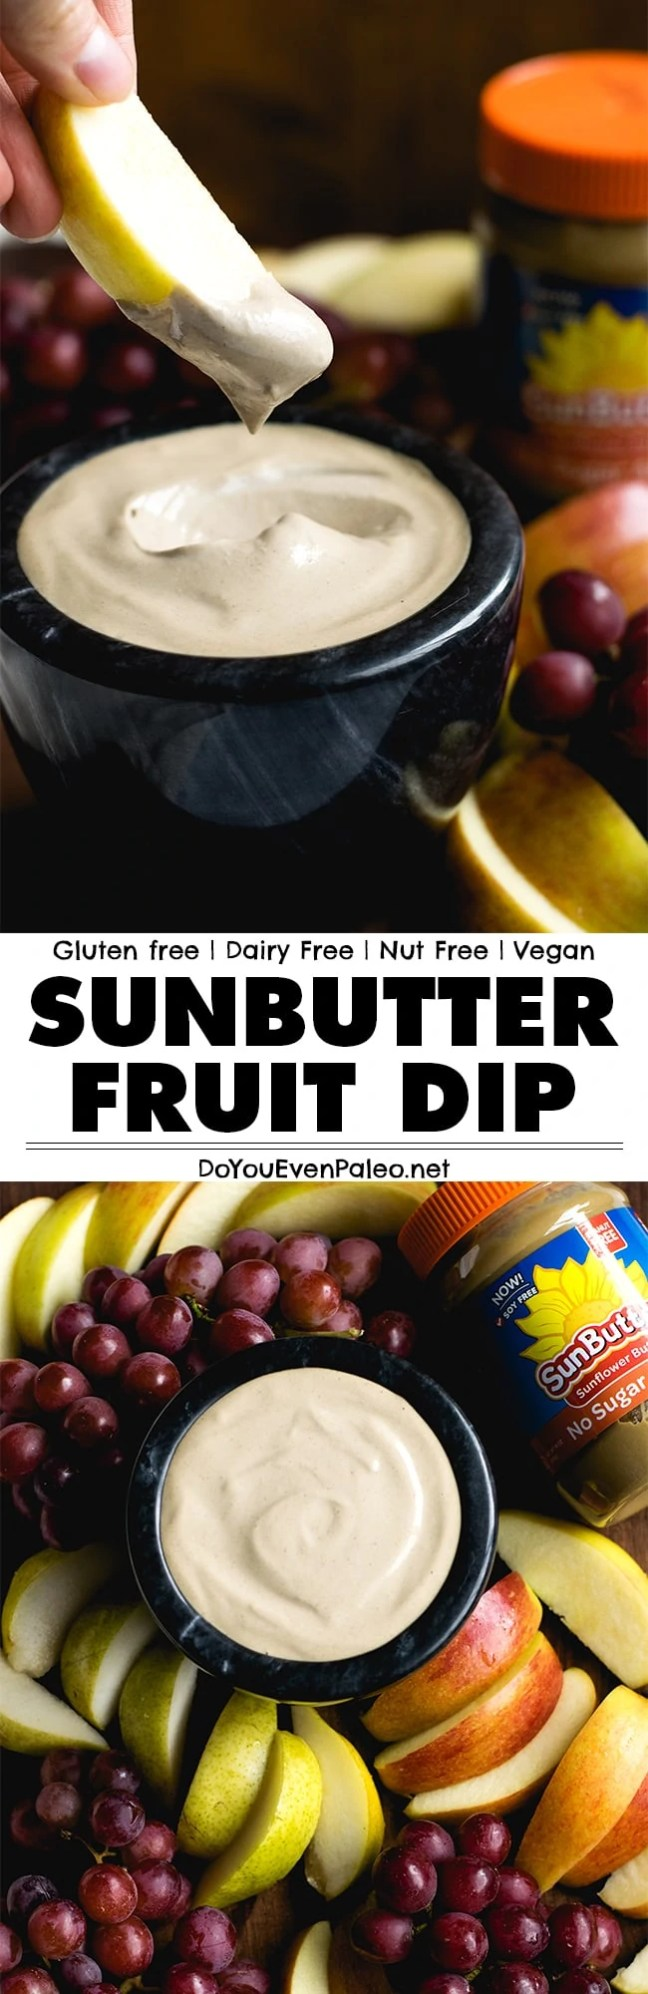 Pair your favorite summer fruits with this Simple Sunbutter Fruit Dip! 5 ingredients and a blender are all you need. Dairy free, nut free, gluten free, and paleo | DoYouEvenPaleo.net